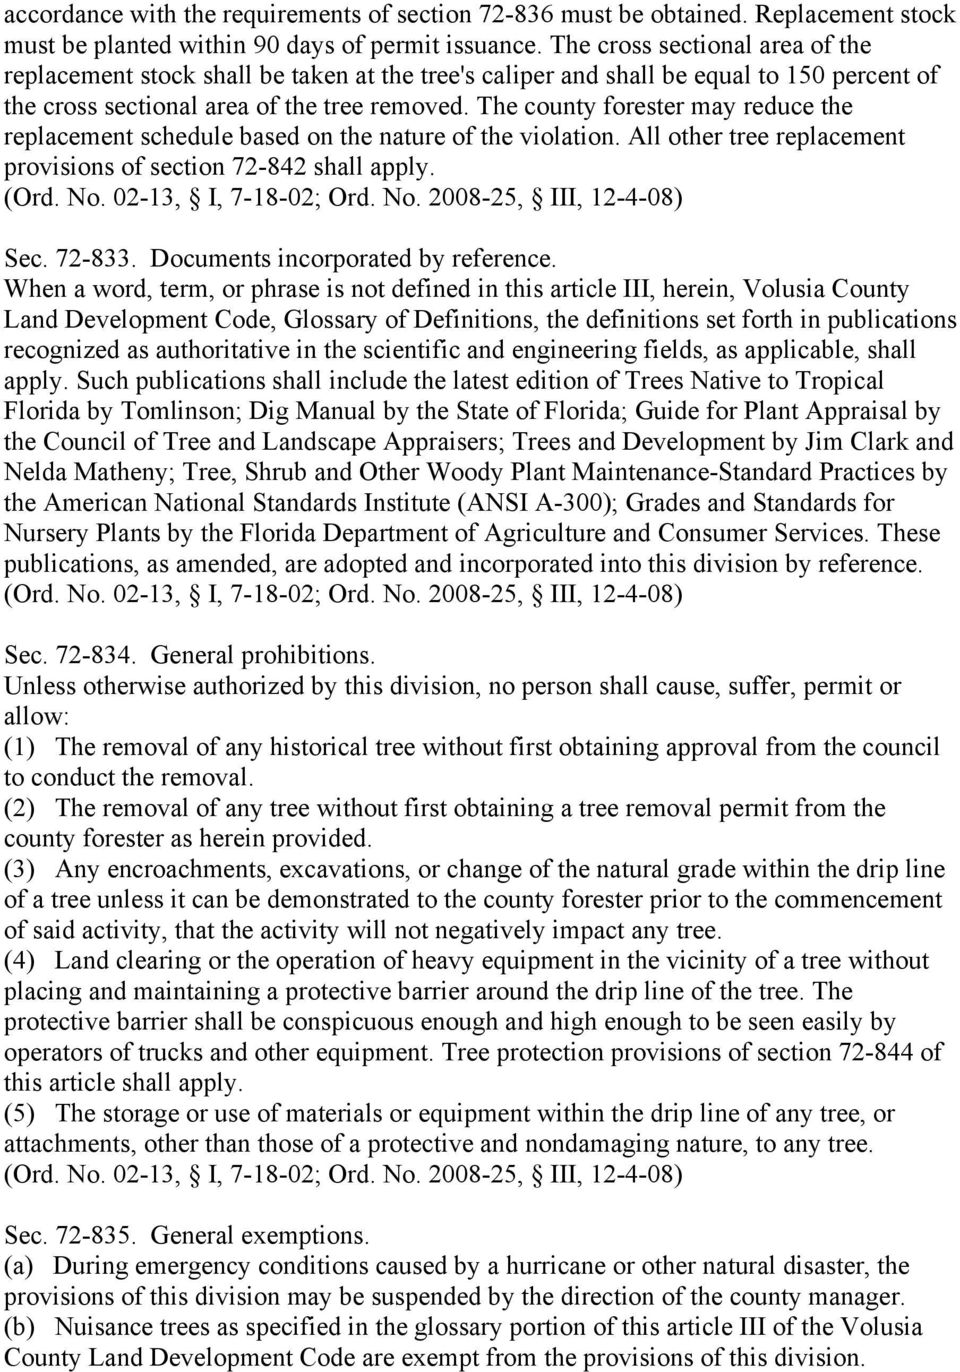 The county forester may reduce the replacement schedule based on the nature of the violation. All other tree replacement provisions of section 72-842 shall apply. Sec. 72-833.